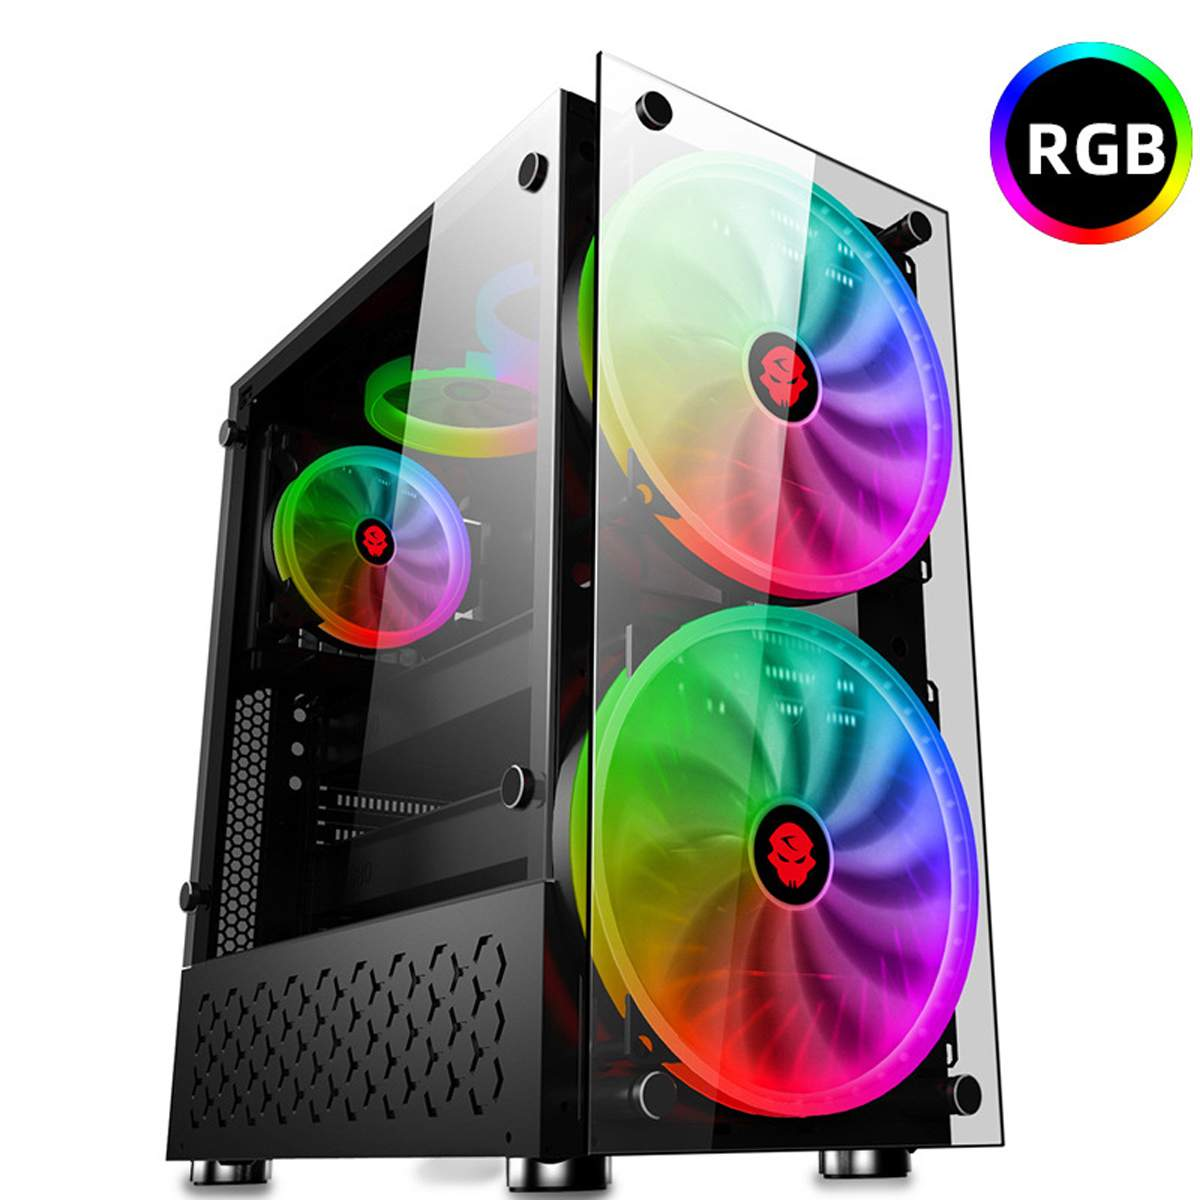 LEORY ATX Gaming Water Cooling PC Case Double Side Tempered Glass Panels RGB Computer Case With 2 Color Changing Fan